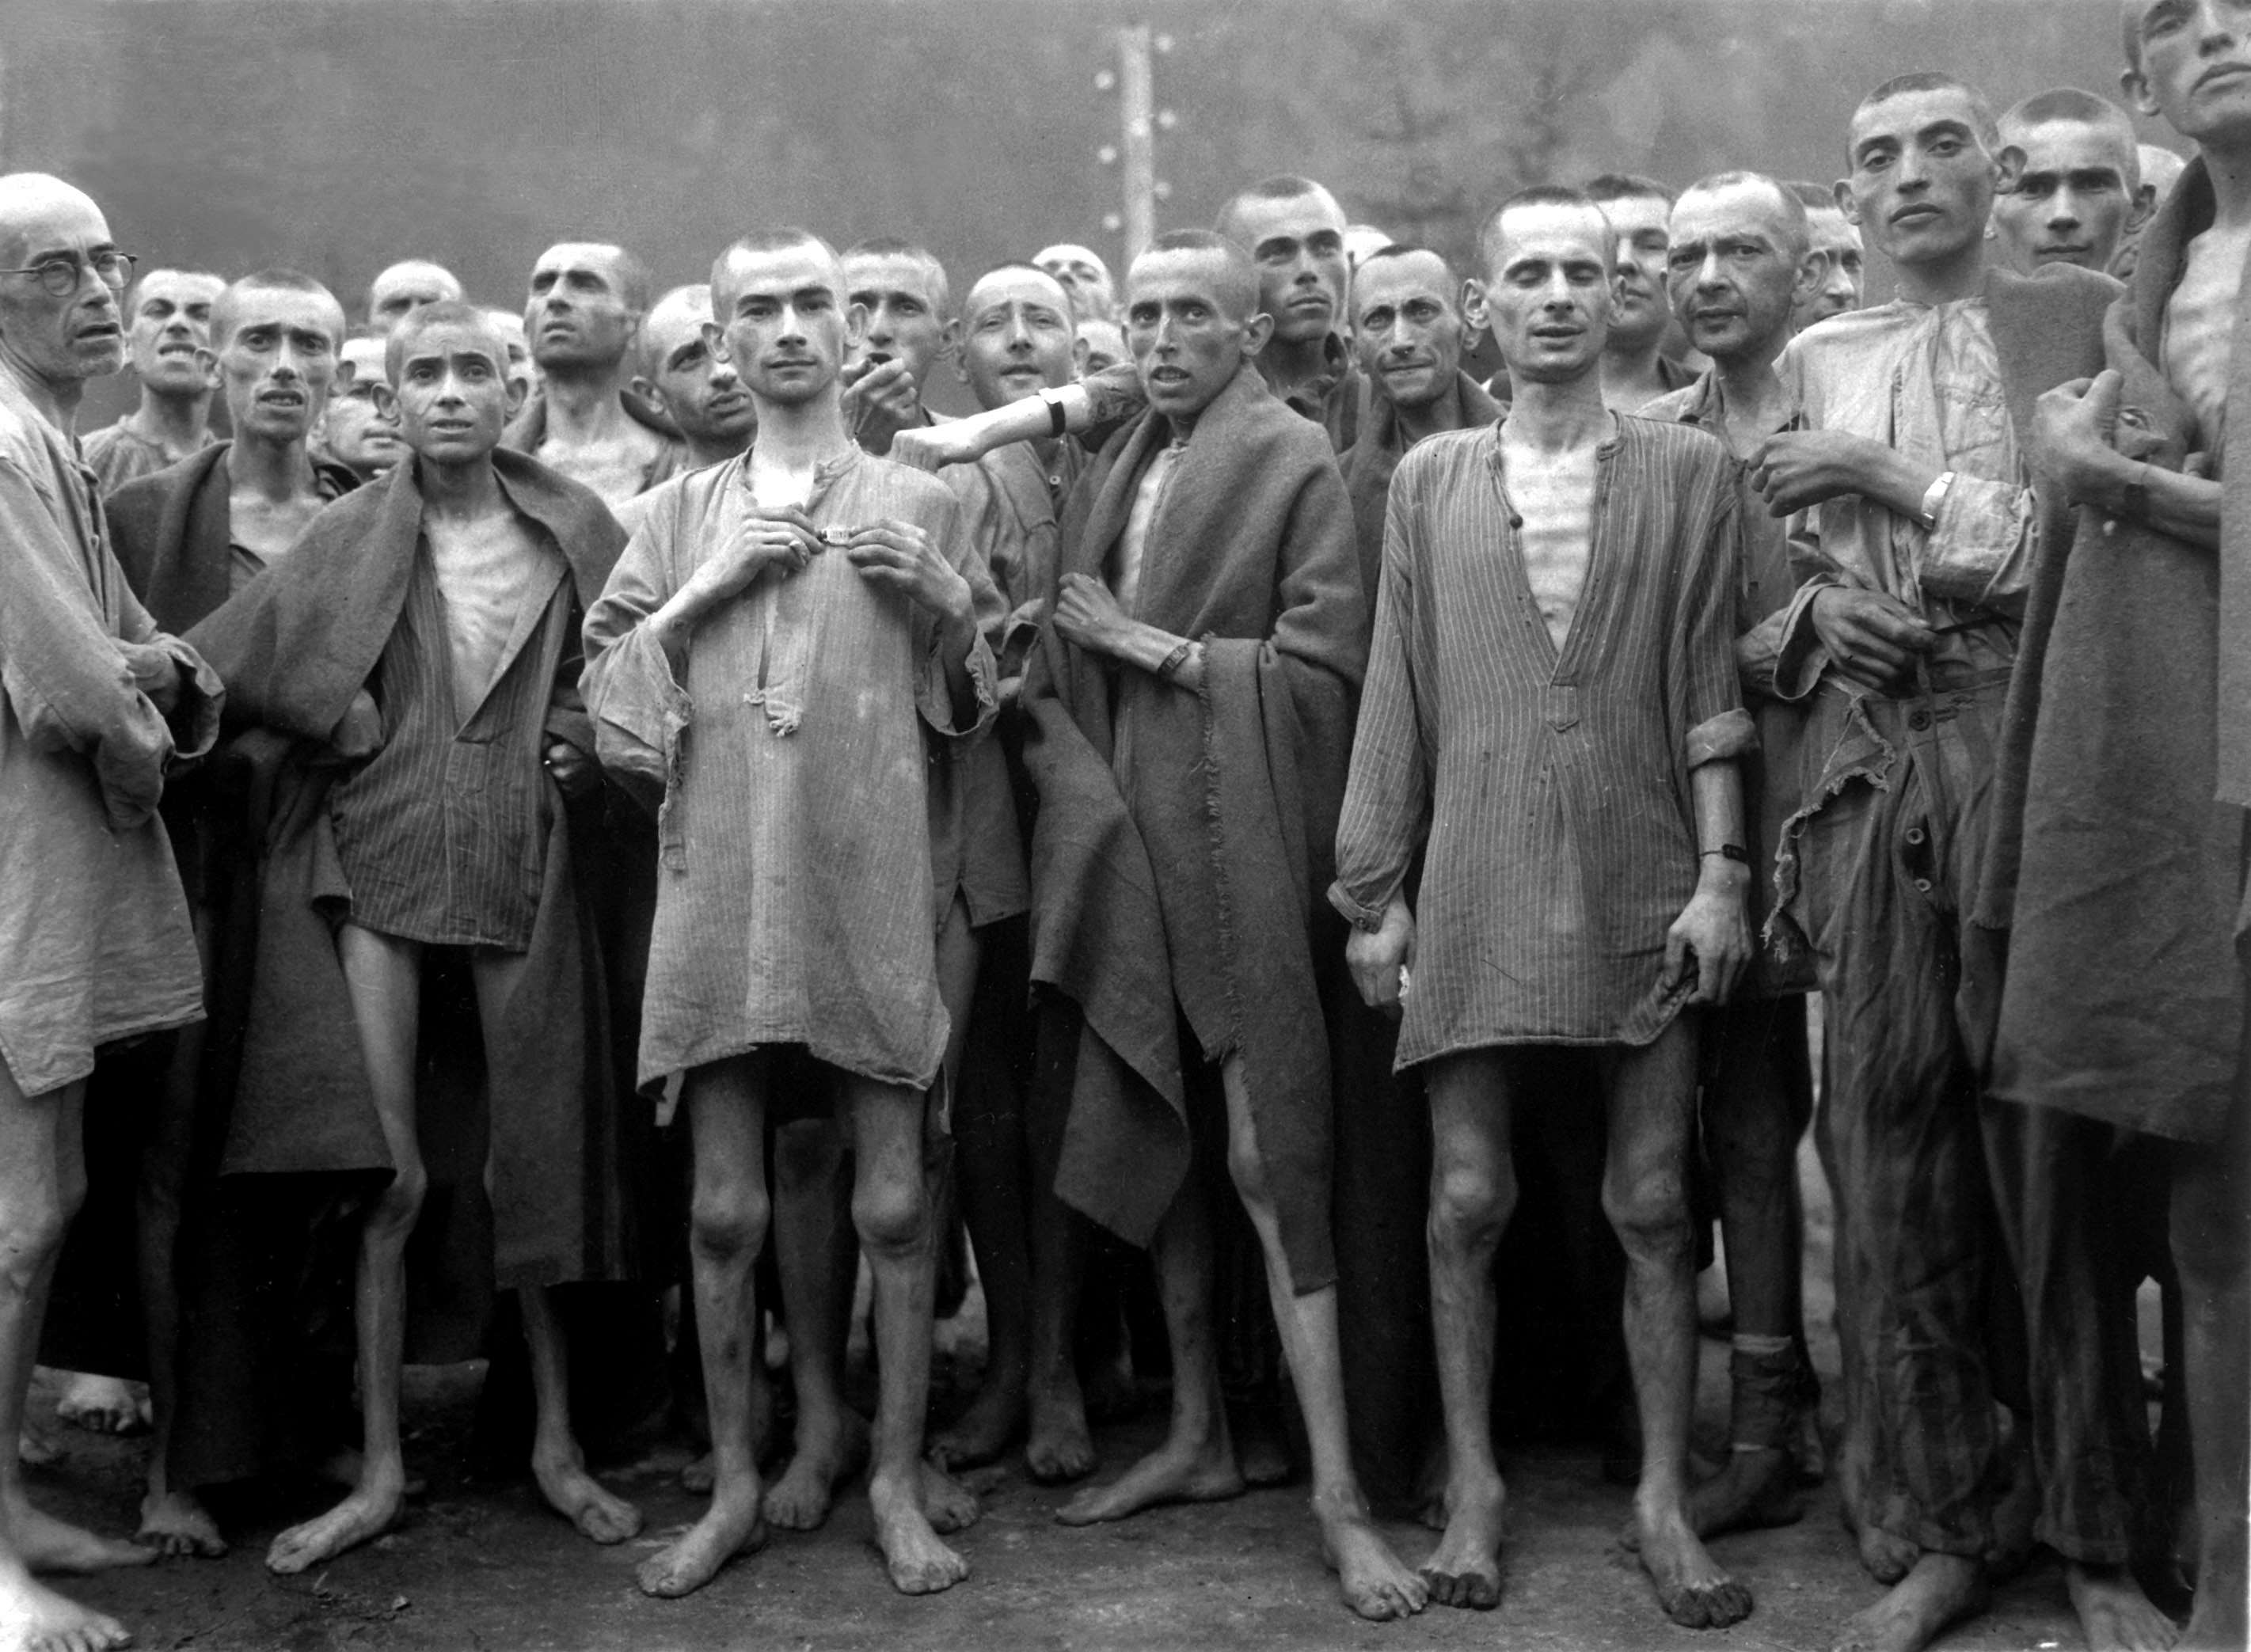 Ebensee concentration camp prisoners 1945.'